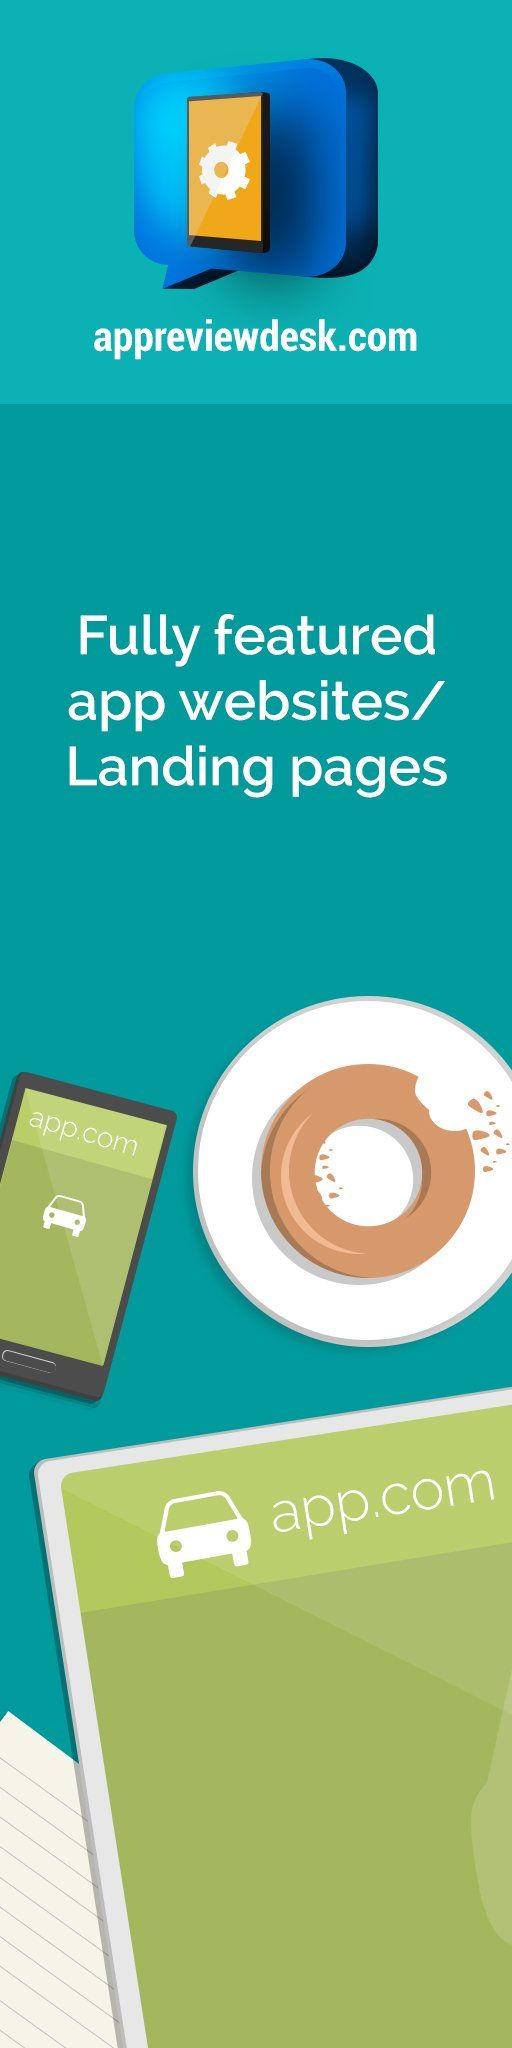 100% Free Landing pages for your app